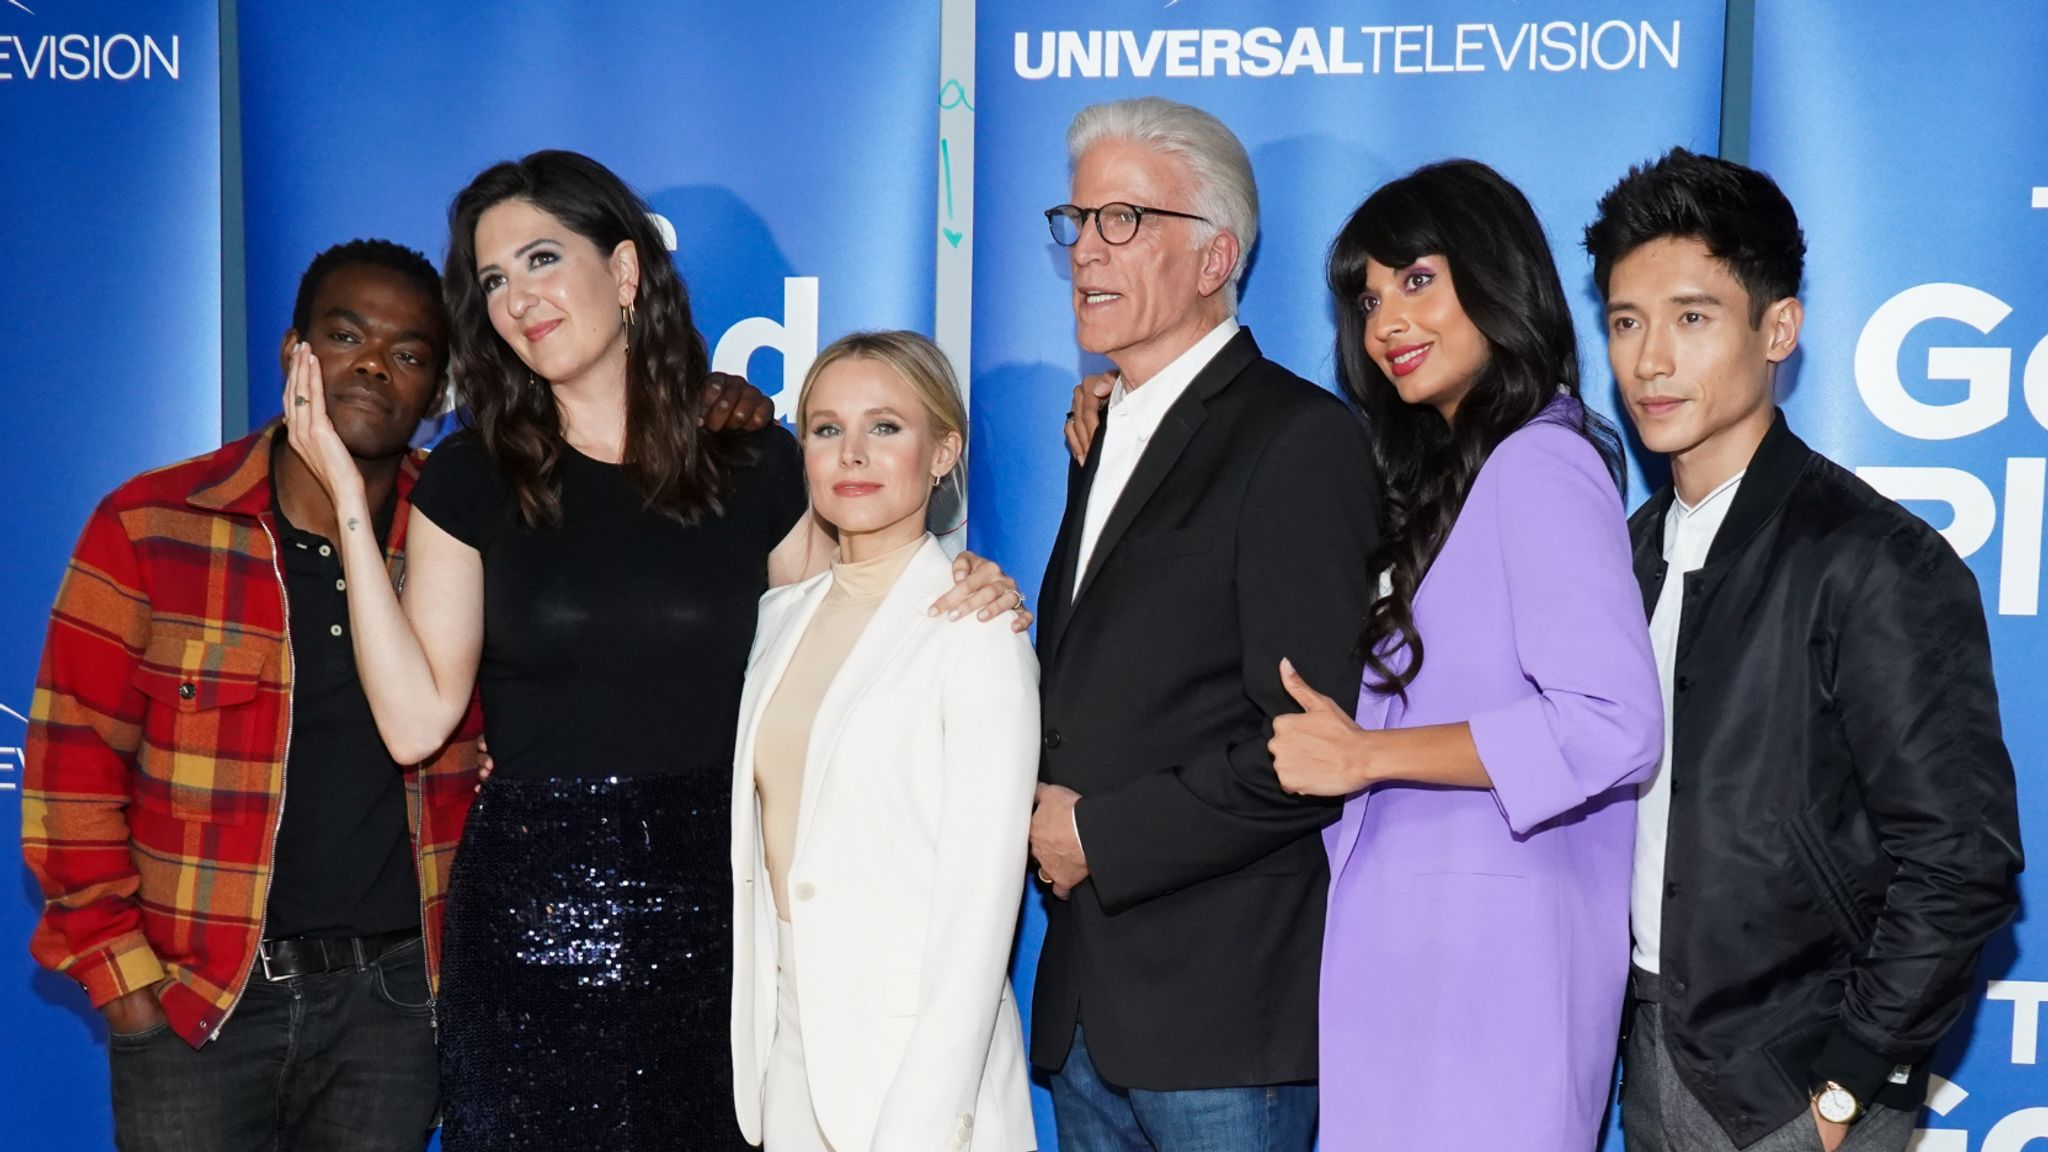 """LOS ANGELES, CALIFORNIA - JUNE 17: (L-R) Marc Evan Jackson, William Jackson Harper, D'Arcy Carden, Kristen Bell, Ted Danson, Jameela Jamil and Manny Jacinto attend Universal Television's """"The Good Place"""" FYC at UCB Sunset Theater on June 17, 2019 in Los Angeles, California. (Photo by Rachel Luna/Getty Images)"""